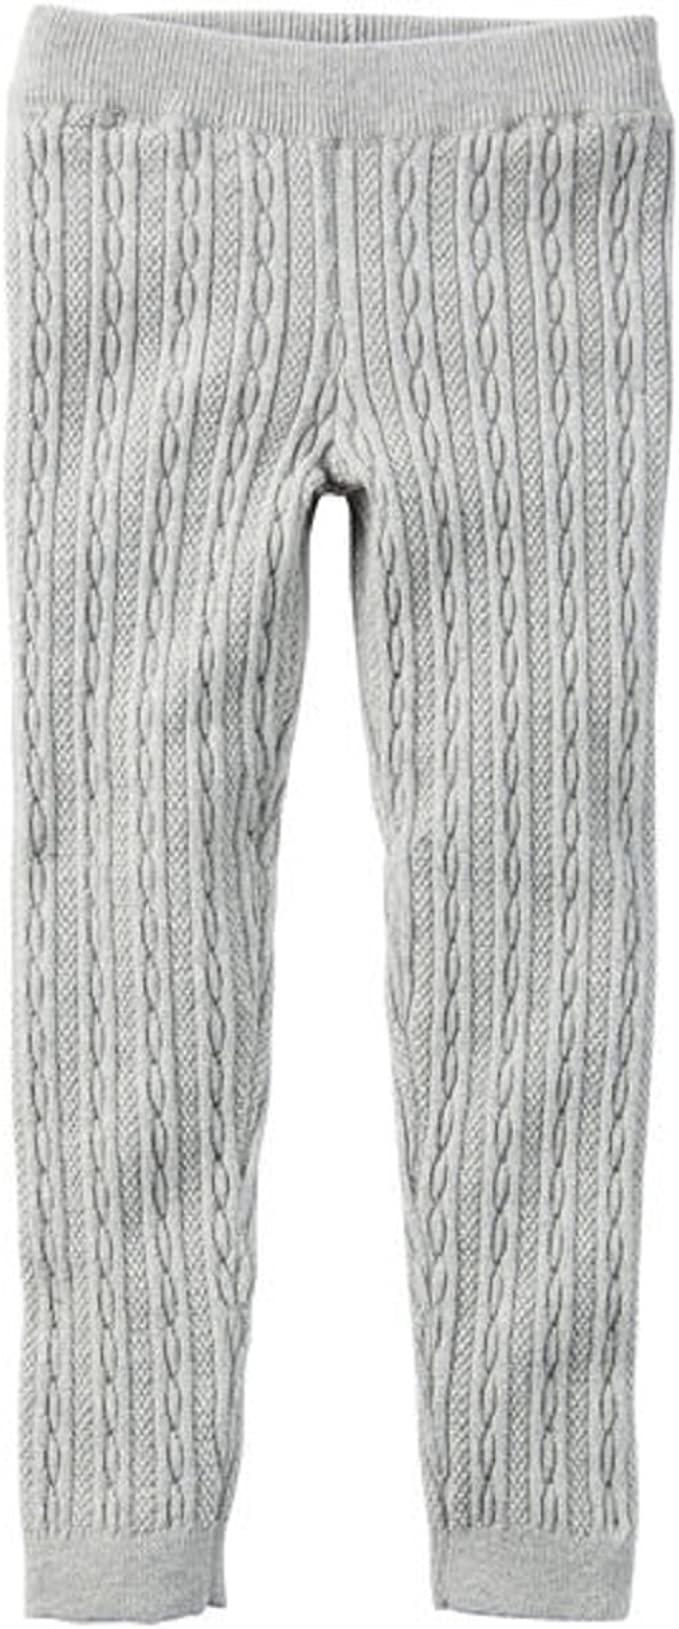 Carter's Little Girls' Cable Knit Sweater Leggings (2t, Gray